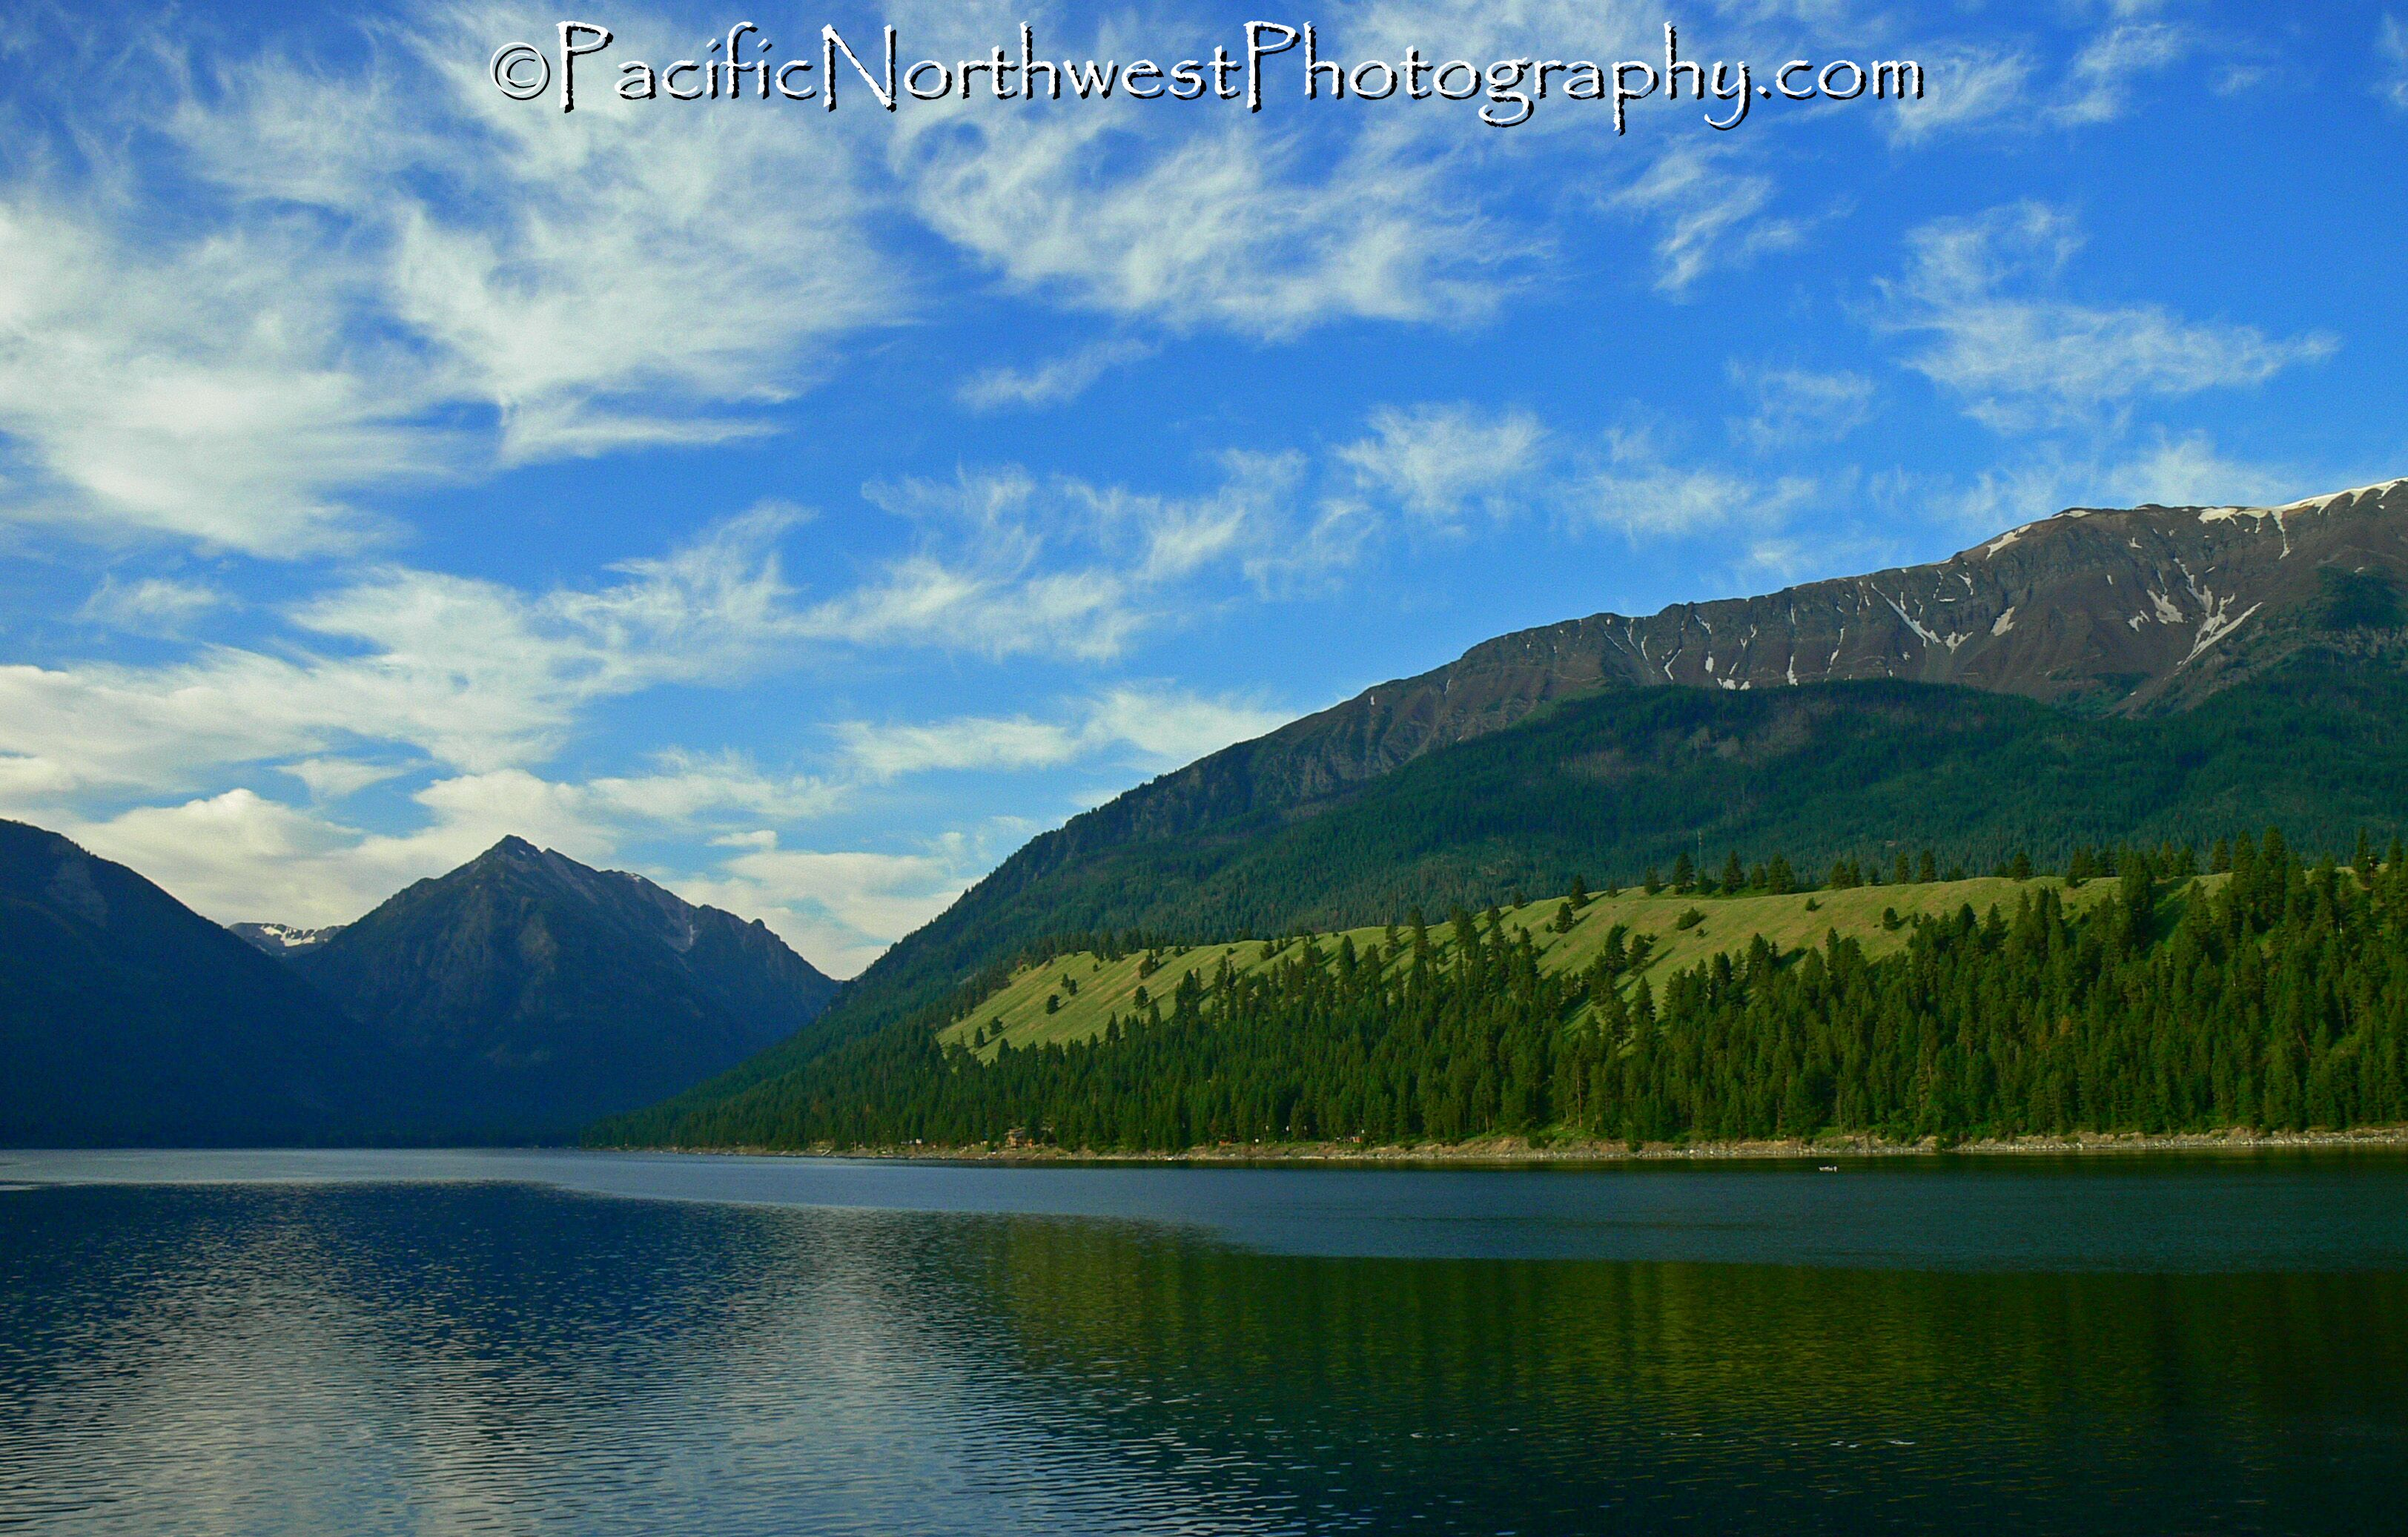 Wallowa Mountains, OR